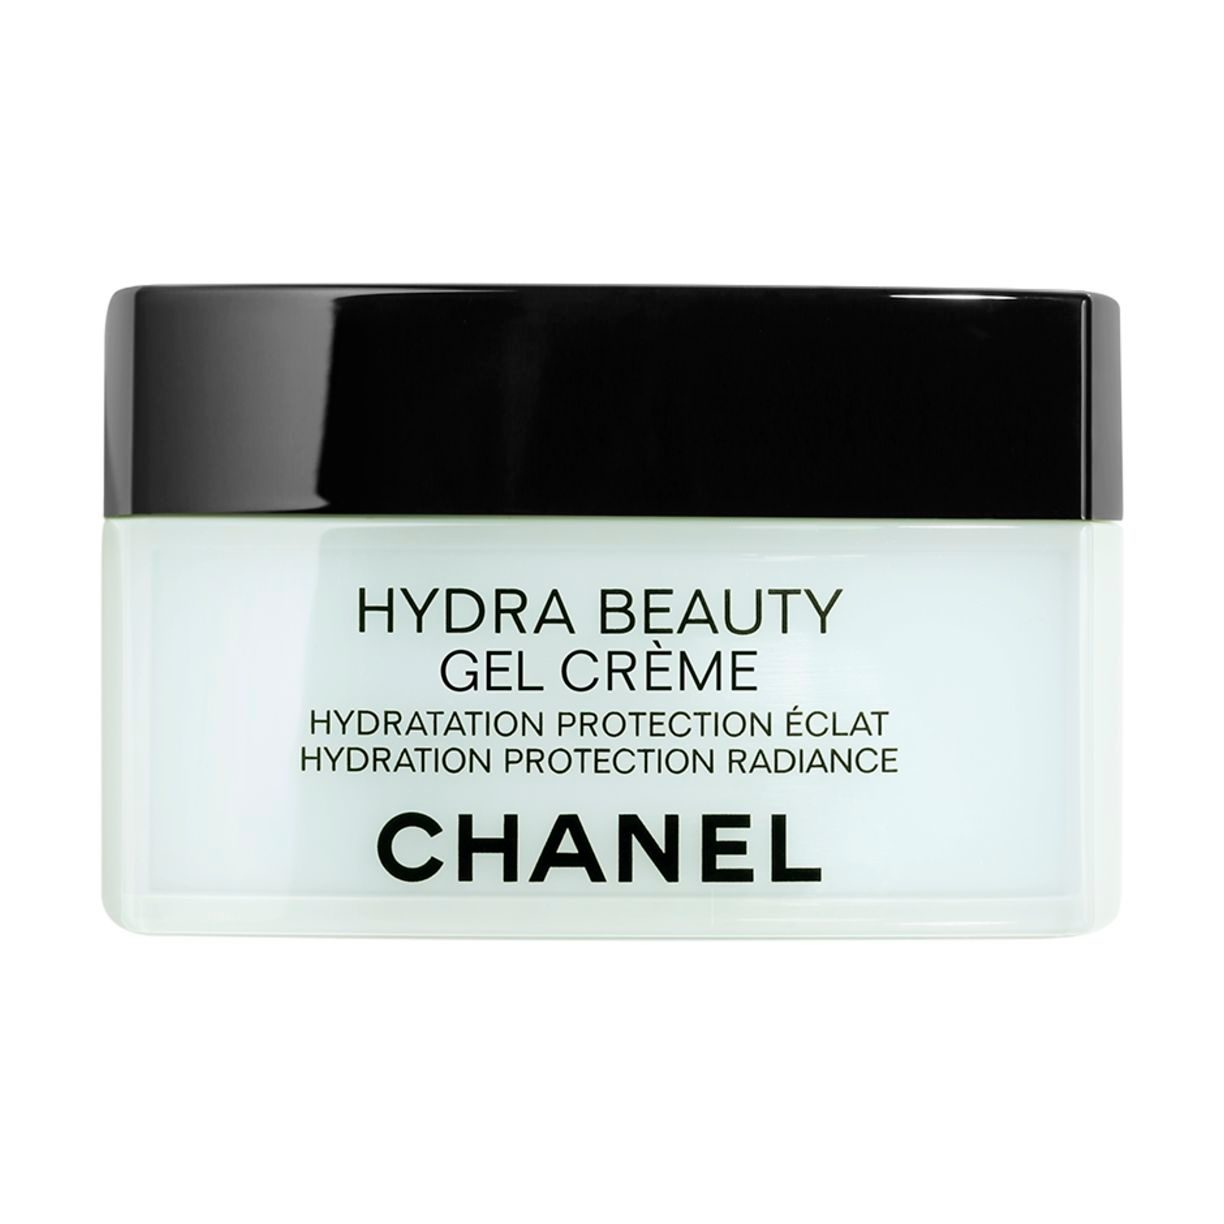 HYDRA BEAUTY GEL CRÈME HYDRATION PROTECTION RADIANCE